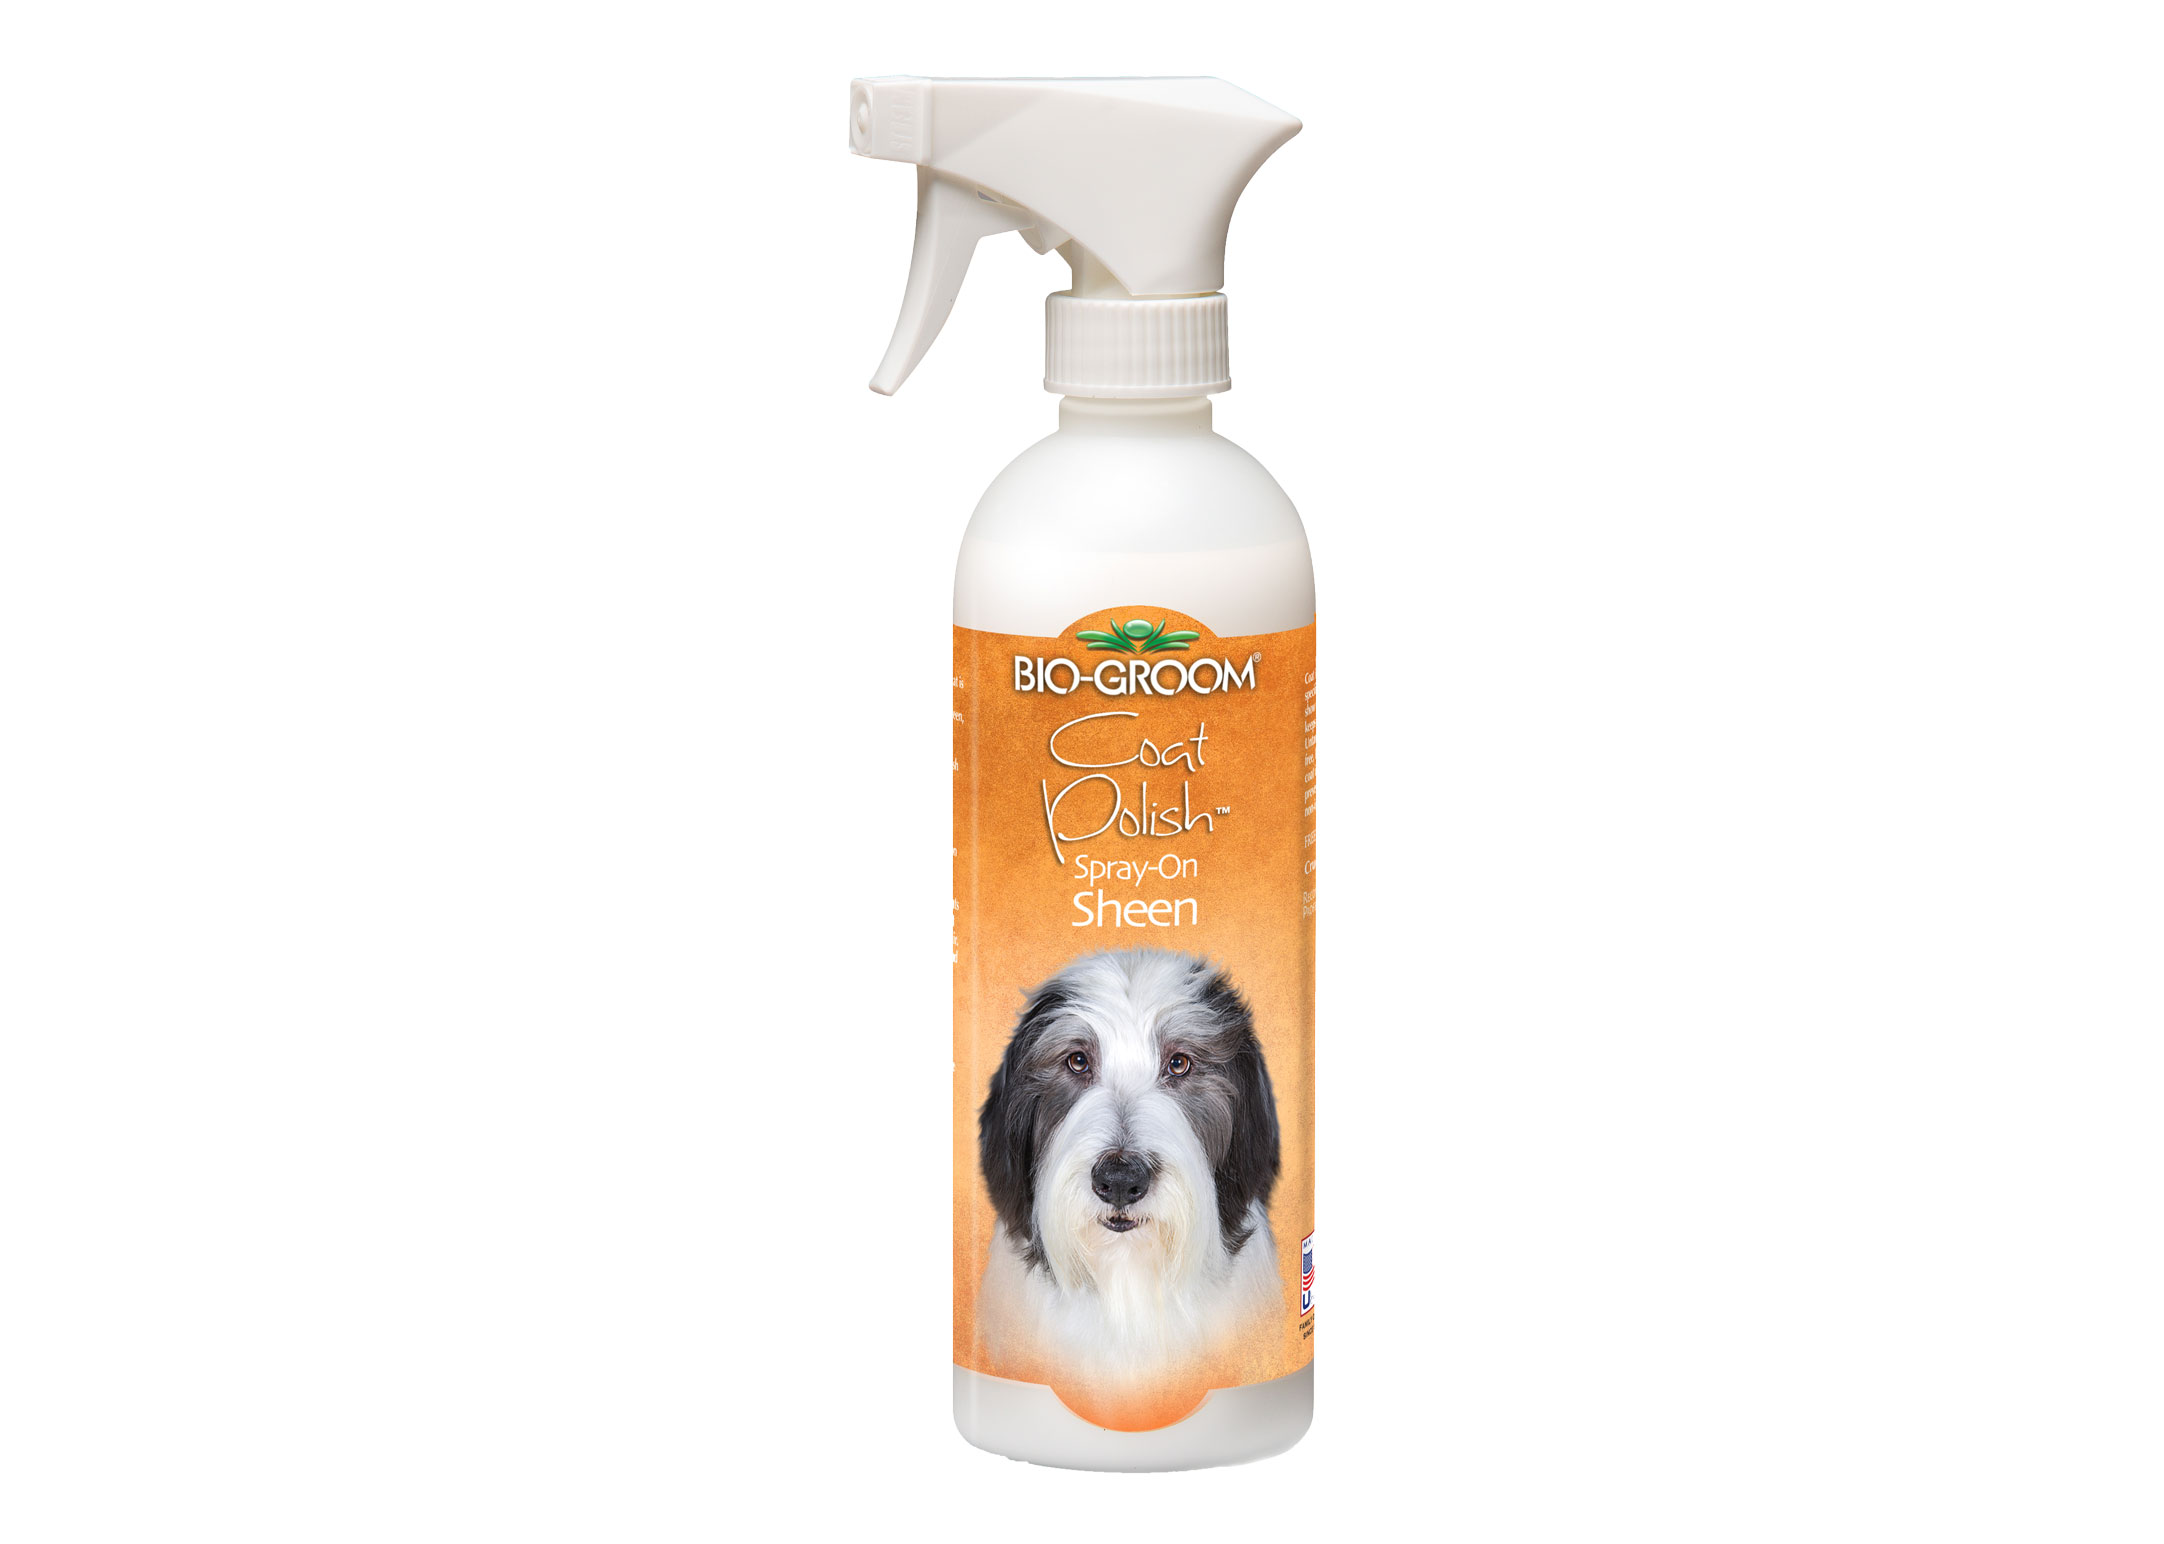 Bio Groom Coat Polish 455 ml Spray-On Sheen